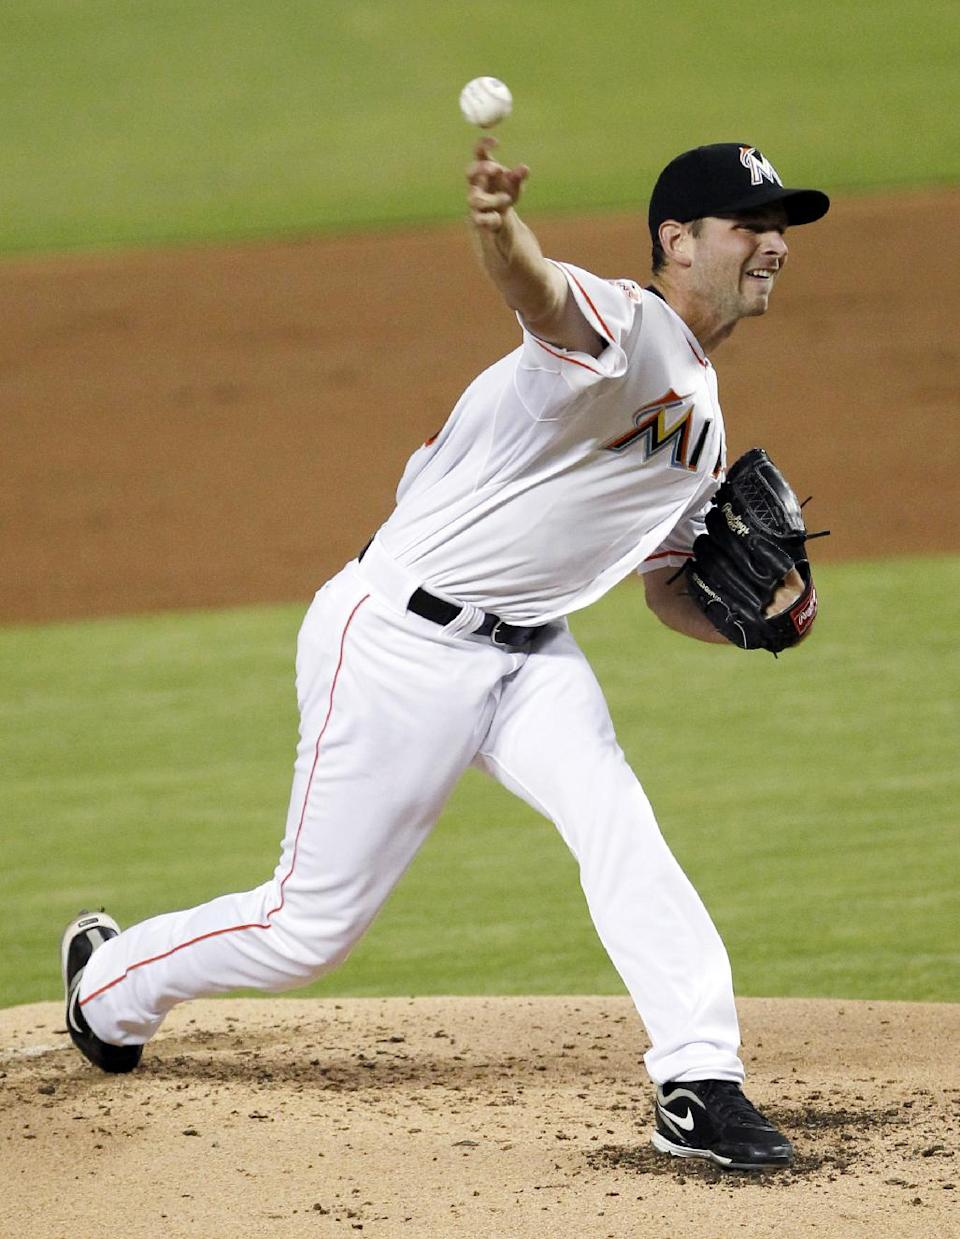 Miami Marlins' Jacob Turner delivers a pitch during the third inning of a baseball game against the Washington Nationals, Wednesday, Aug. 29, 2012, in Miami. (AP Photo/Wilfredo Lee)